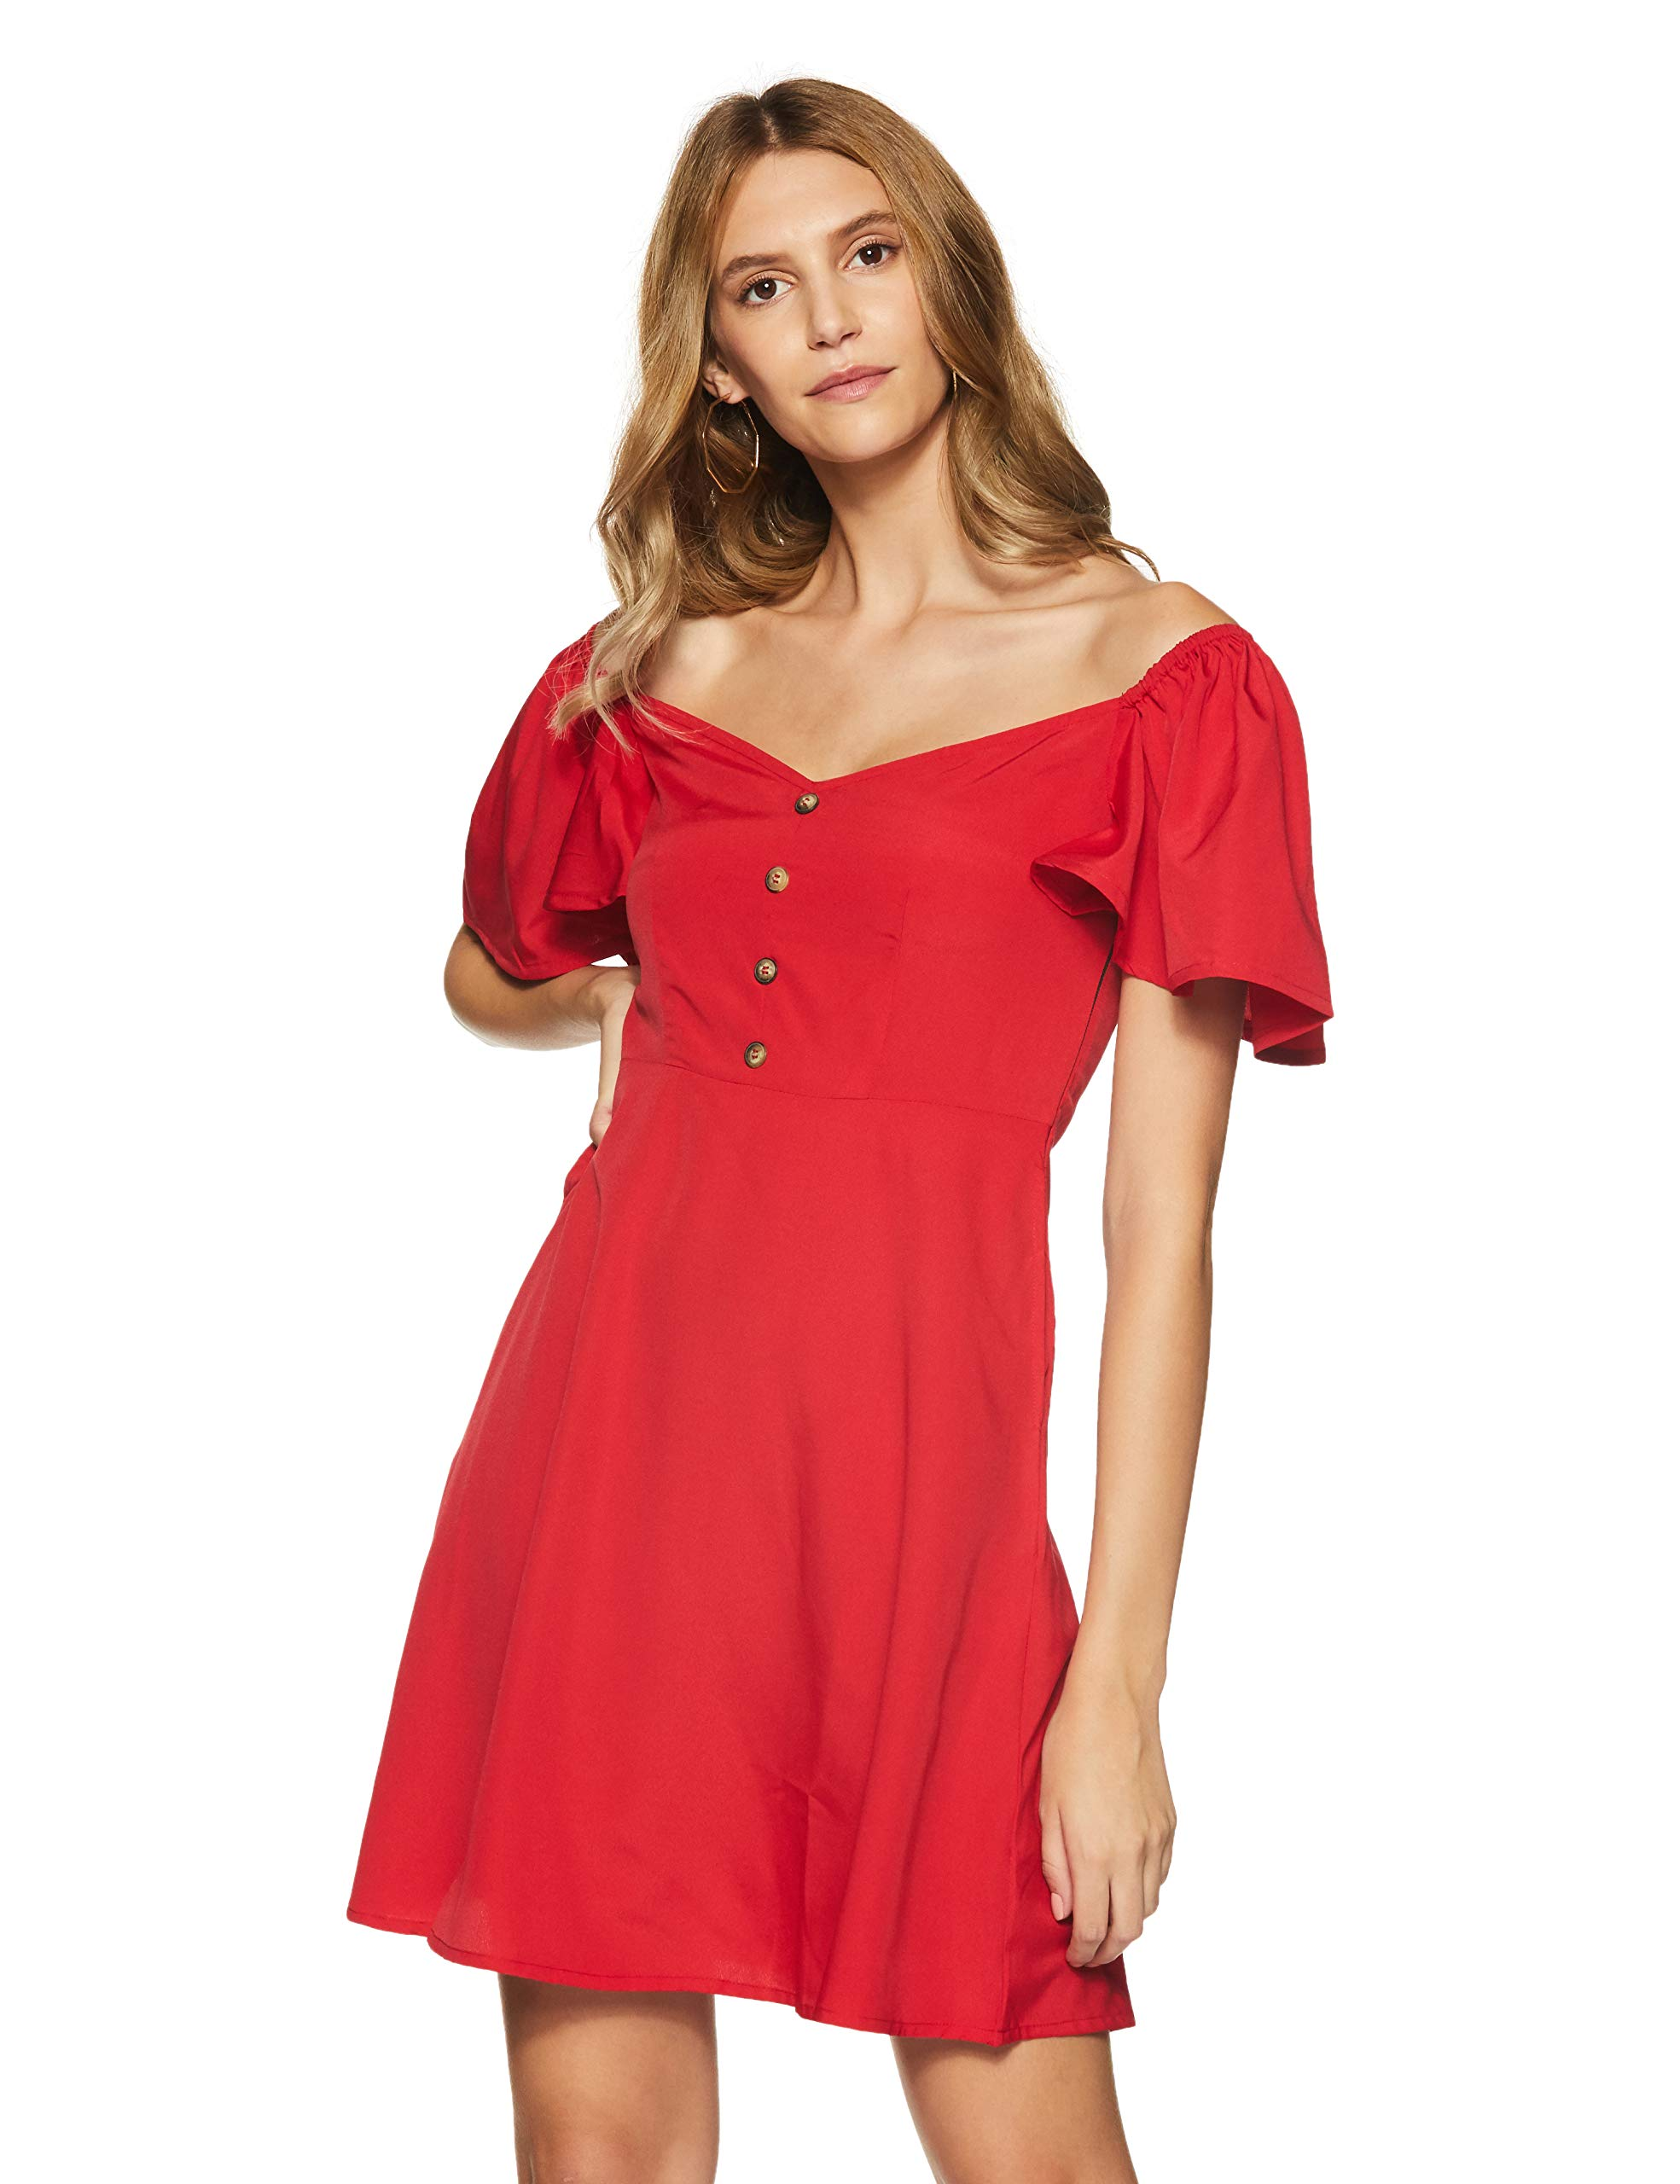 Stalk Buy Love Women's Dress